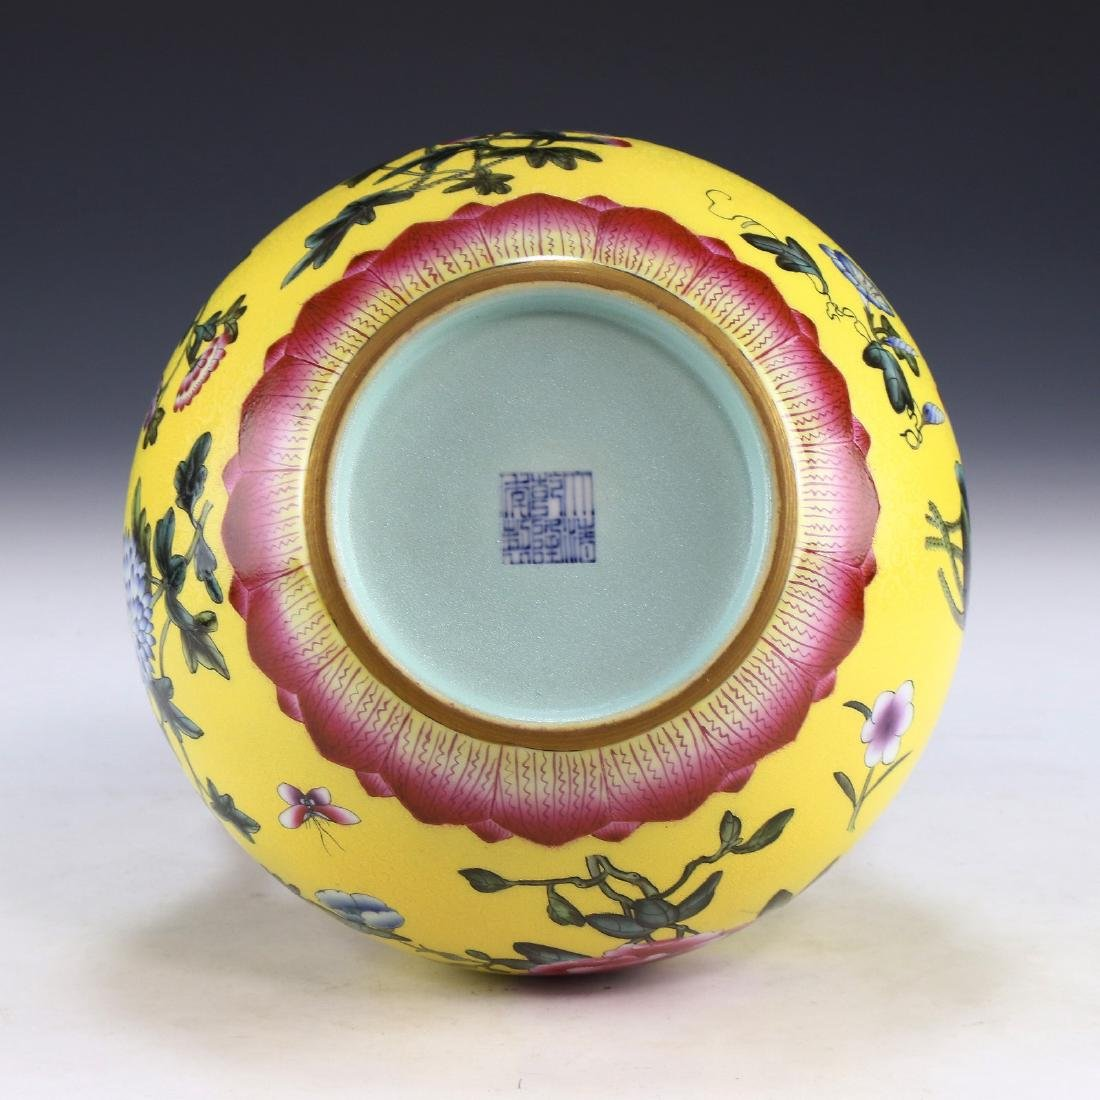 A CHINESE ANTIQUE FAMILLE ROSE YELLOW GROUND PORCELAIN - 5